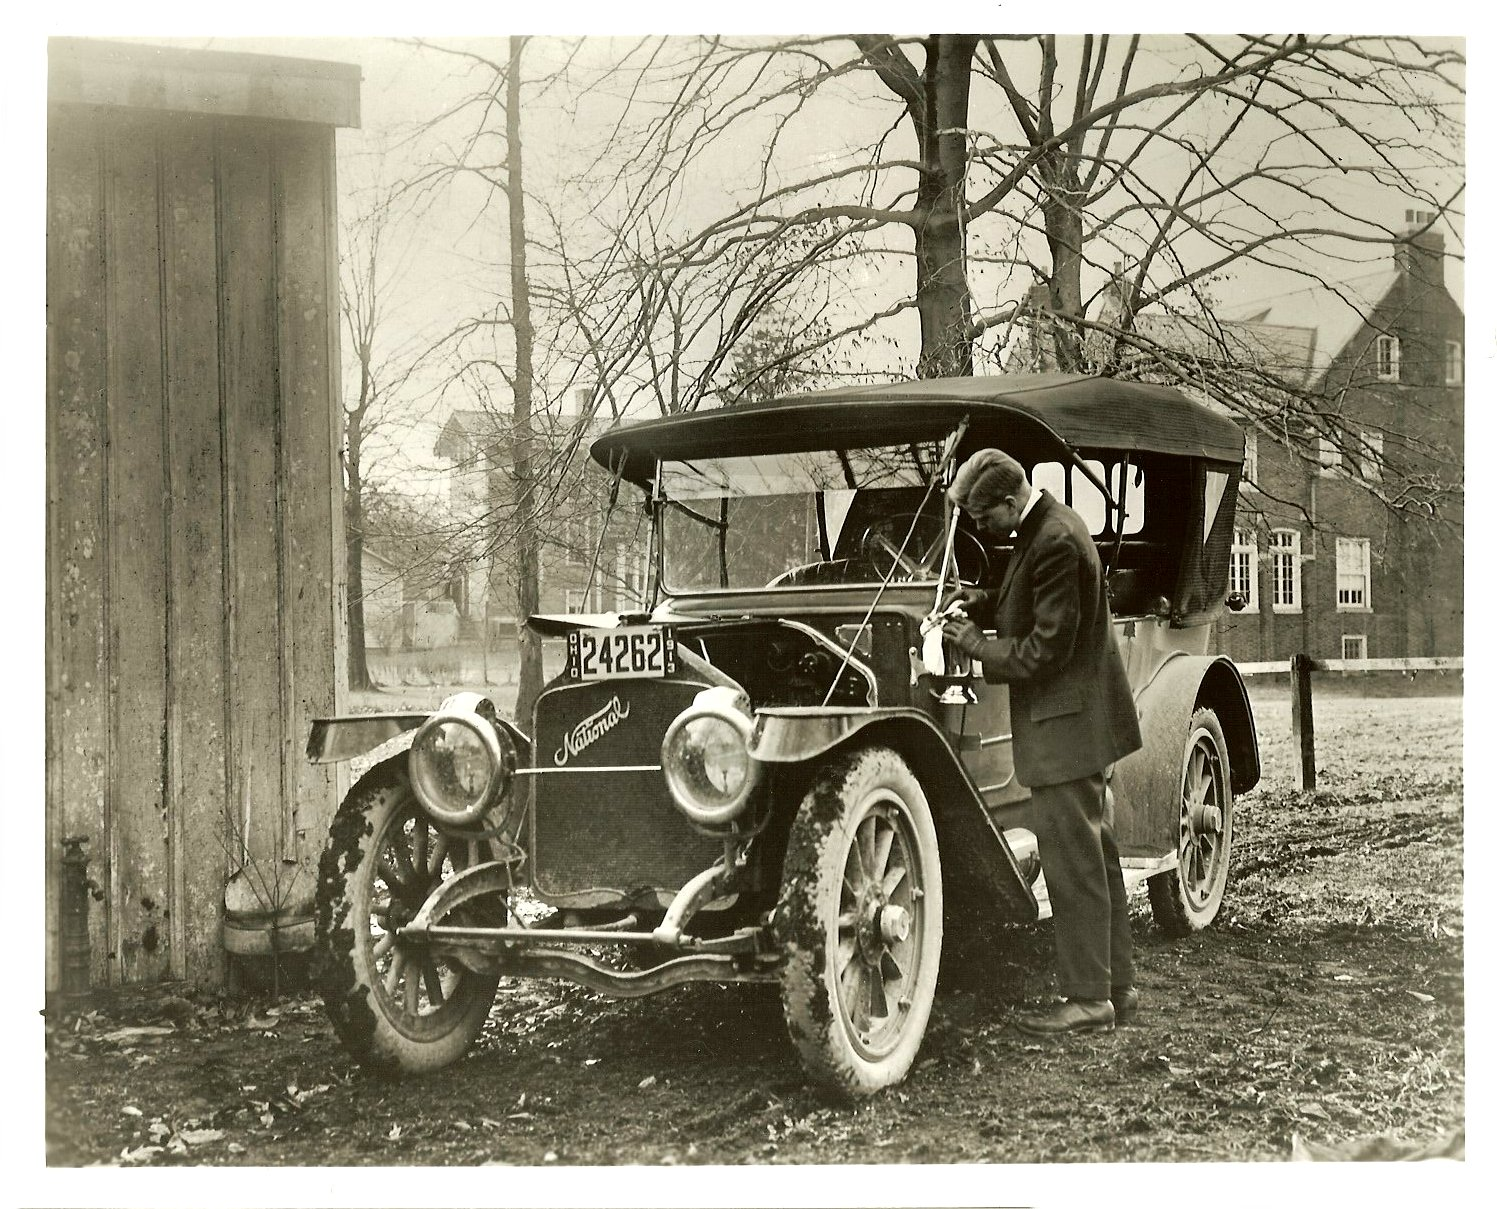 1912-13 NATIONAL John A Conde Collection Bloomfield Michigan 10″x8″ Black & White photograph